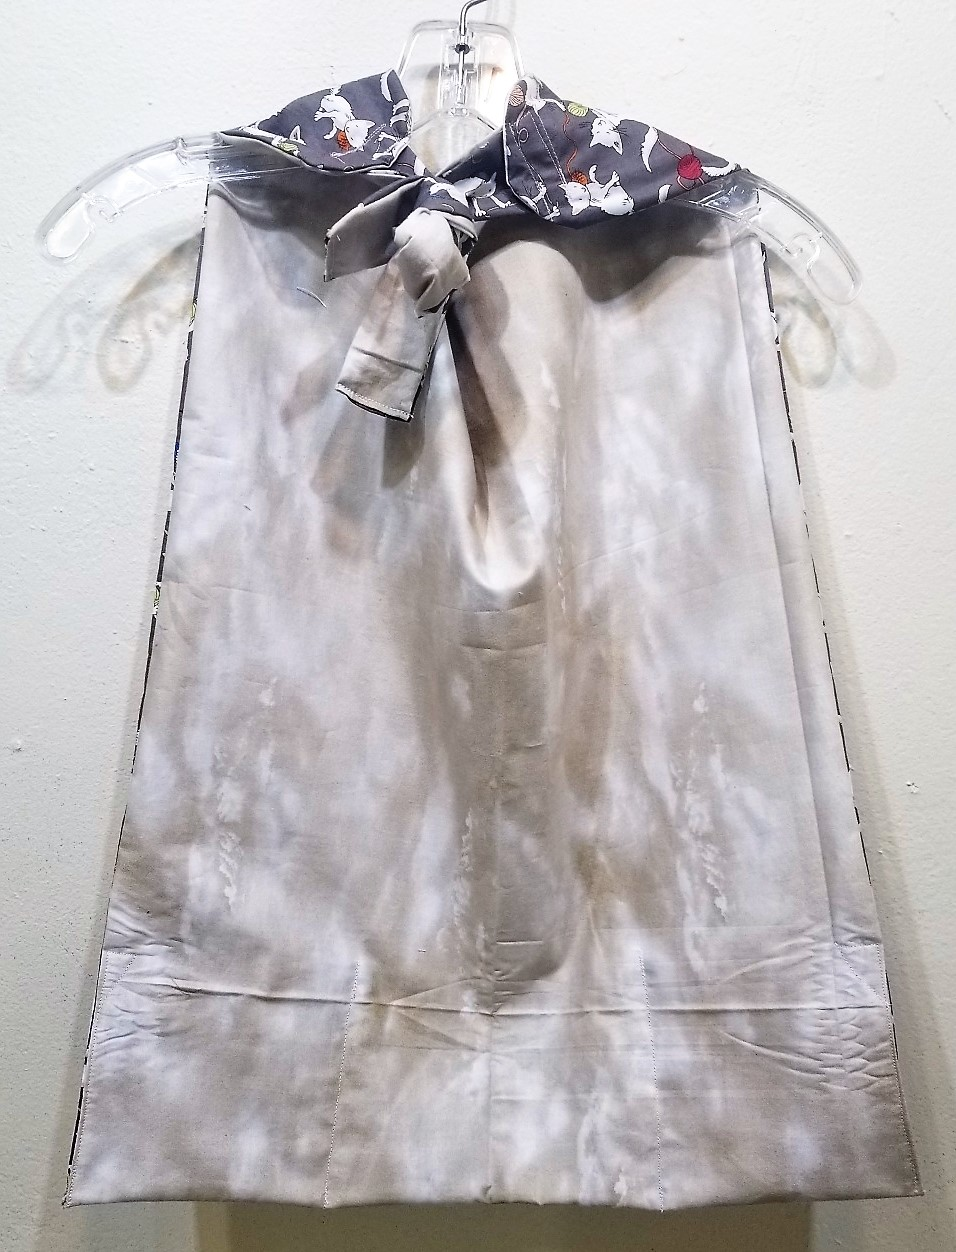 Handmade Adult Bib, by Mary Nordstrom